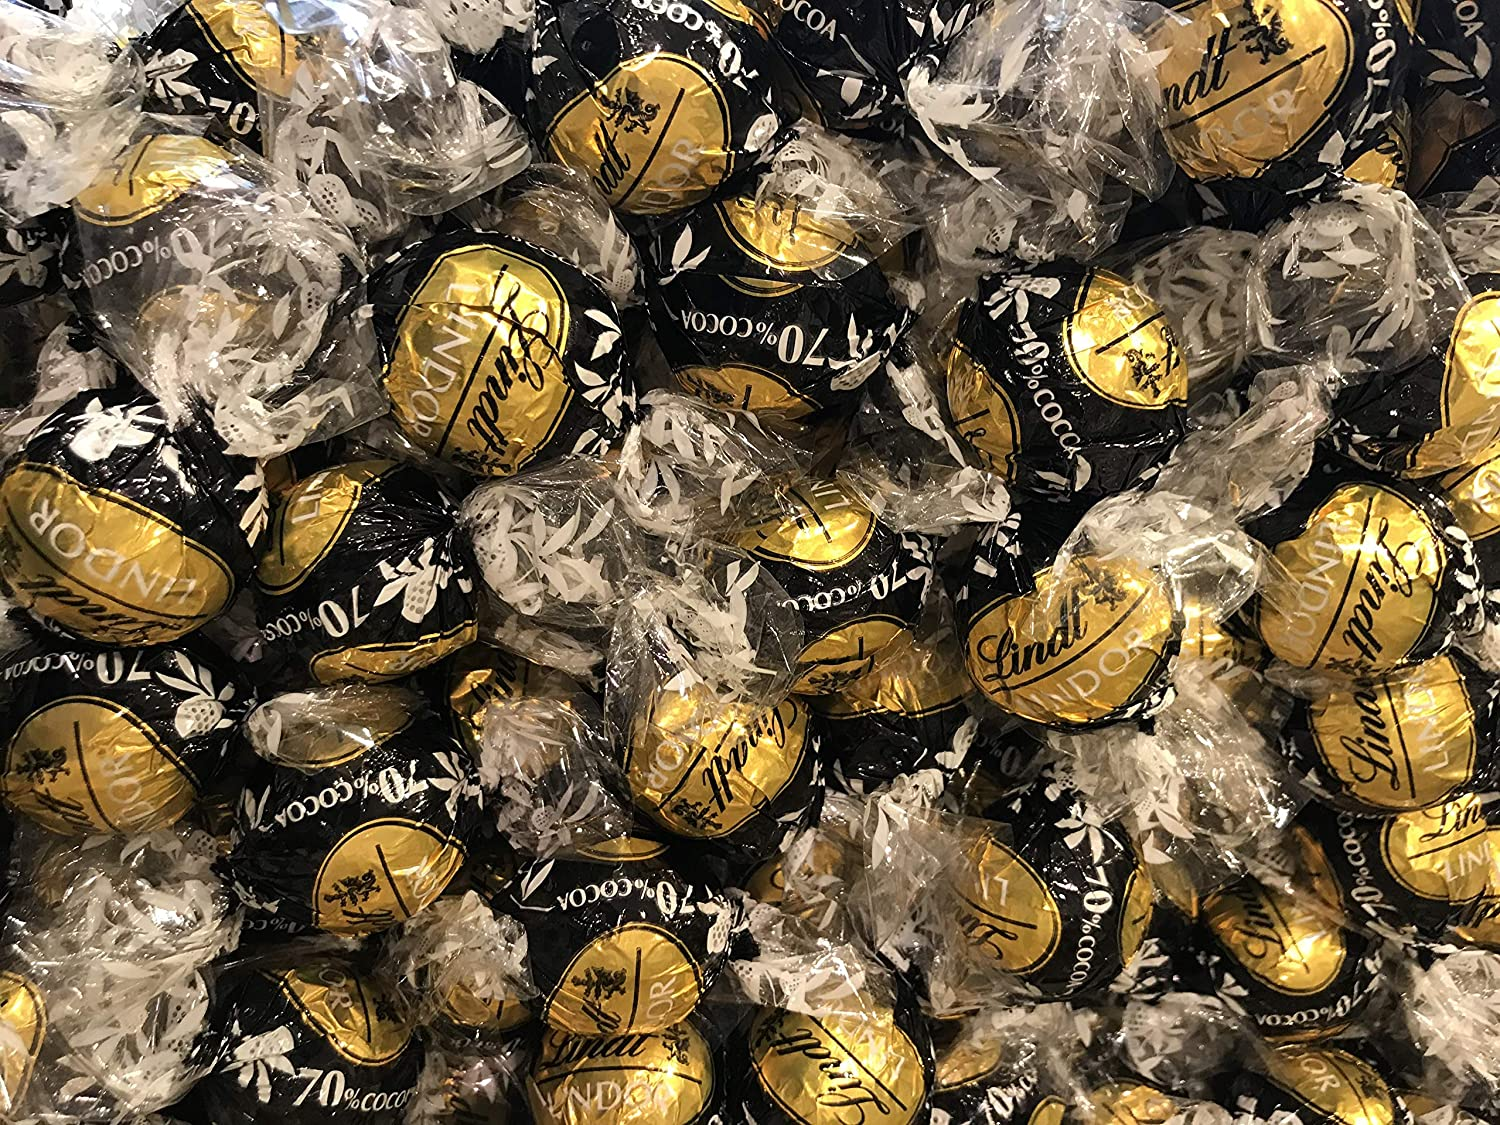 Lindt Lindor Dark Chocolate Truffles, 70% Cocoa Extra Dark Chocolate Balls Individually Wrapped, Black And Gold Wrapping, Bulk Pack 4 Pounds